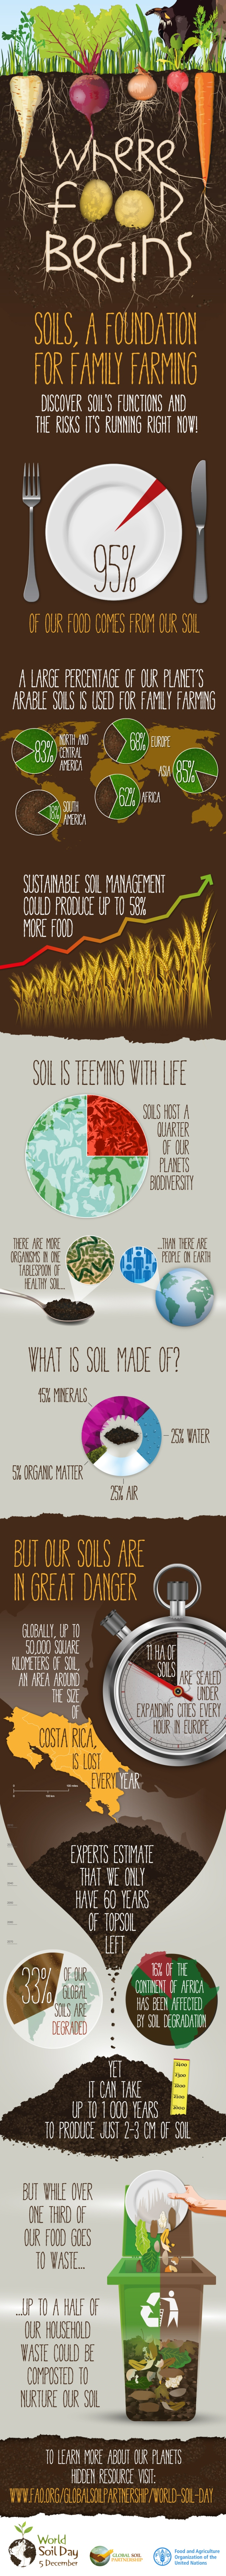 Global Soil Partnership infographic